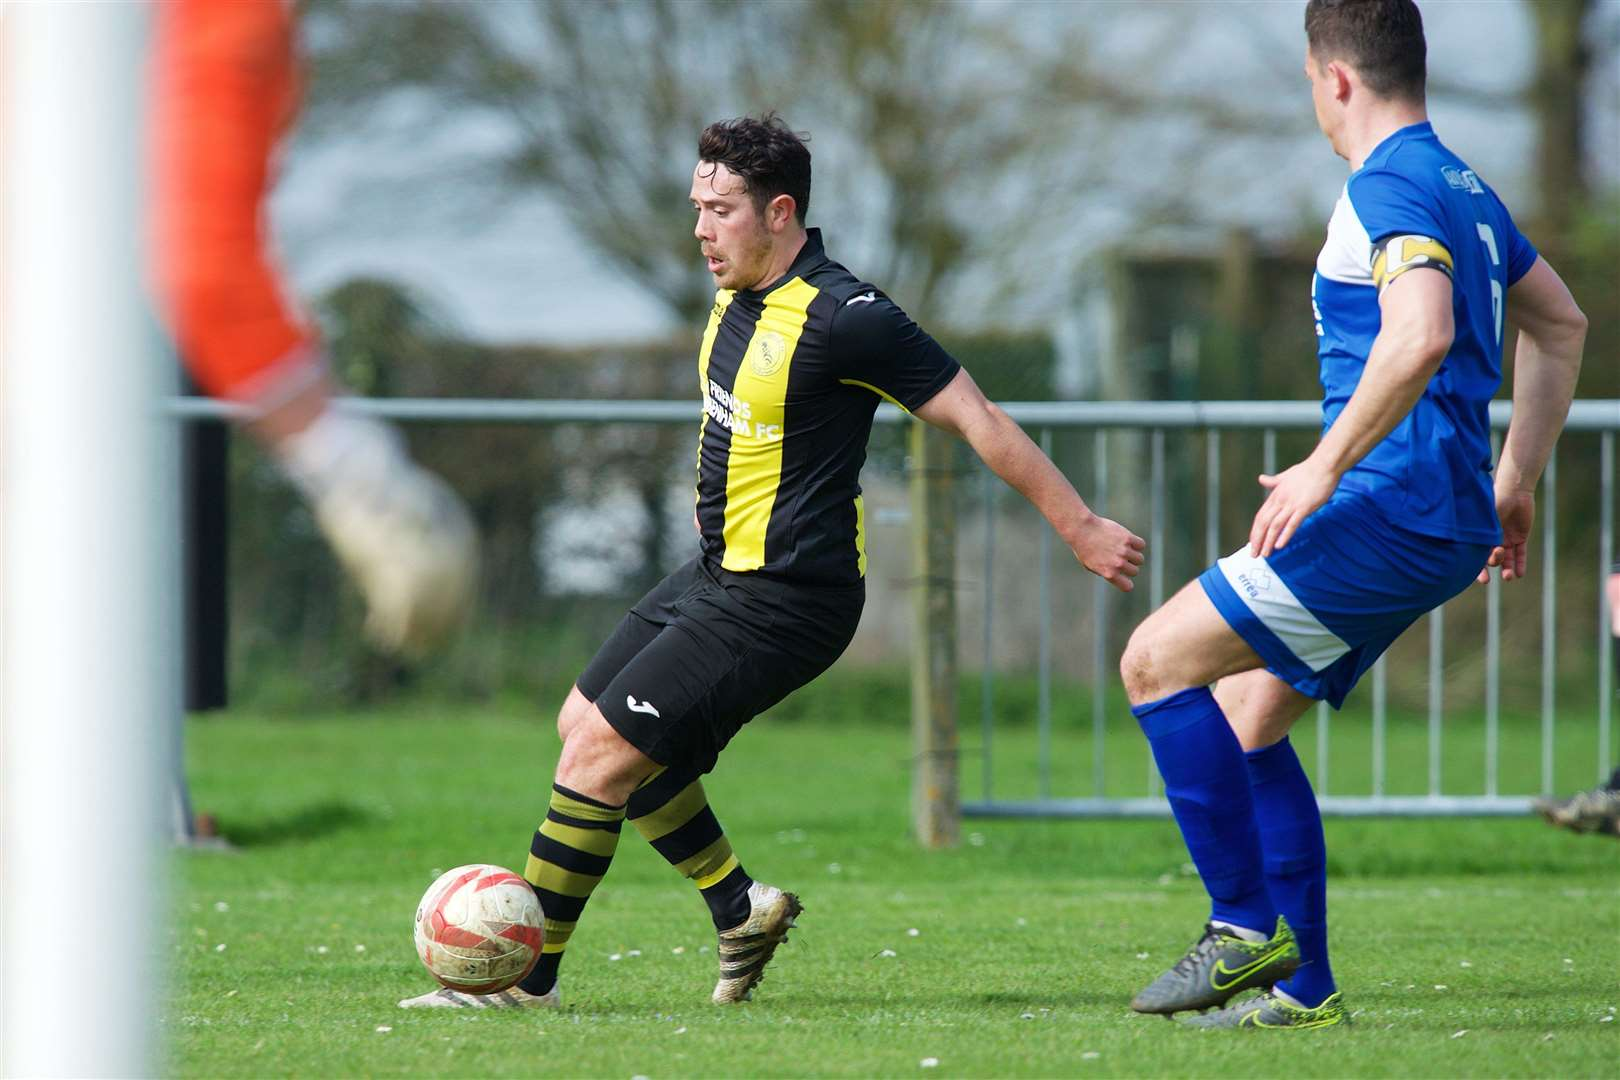 DEBUT GOAL: Jack Severy opened his Brettsiders' account on Friday Picture: Mark Bullimore